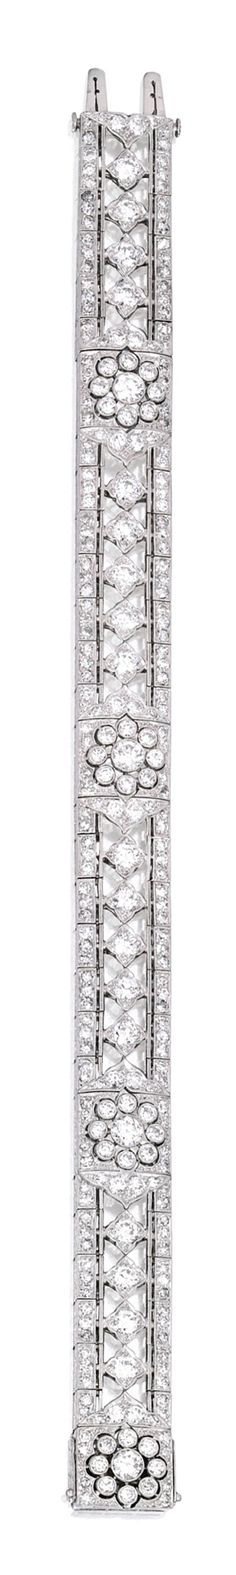 PLATINUM AND DIAMOND BRACELET Of openwork design decorated with floral motifs, set with numerous round and single-cut diamonds weighing approximately 8.55 carats, length 7½ inches.